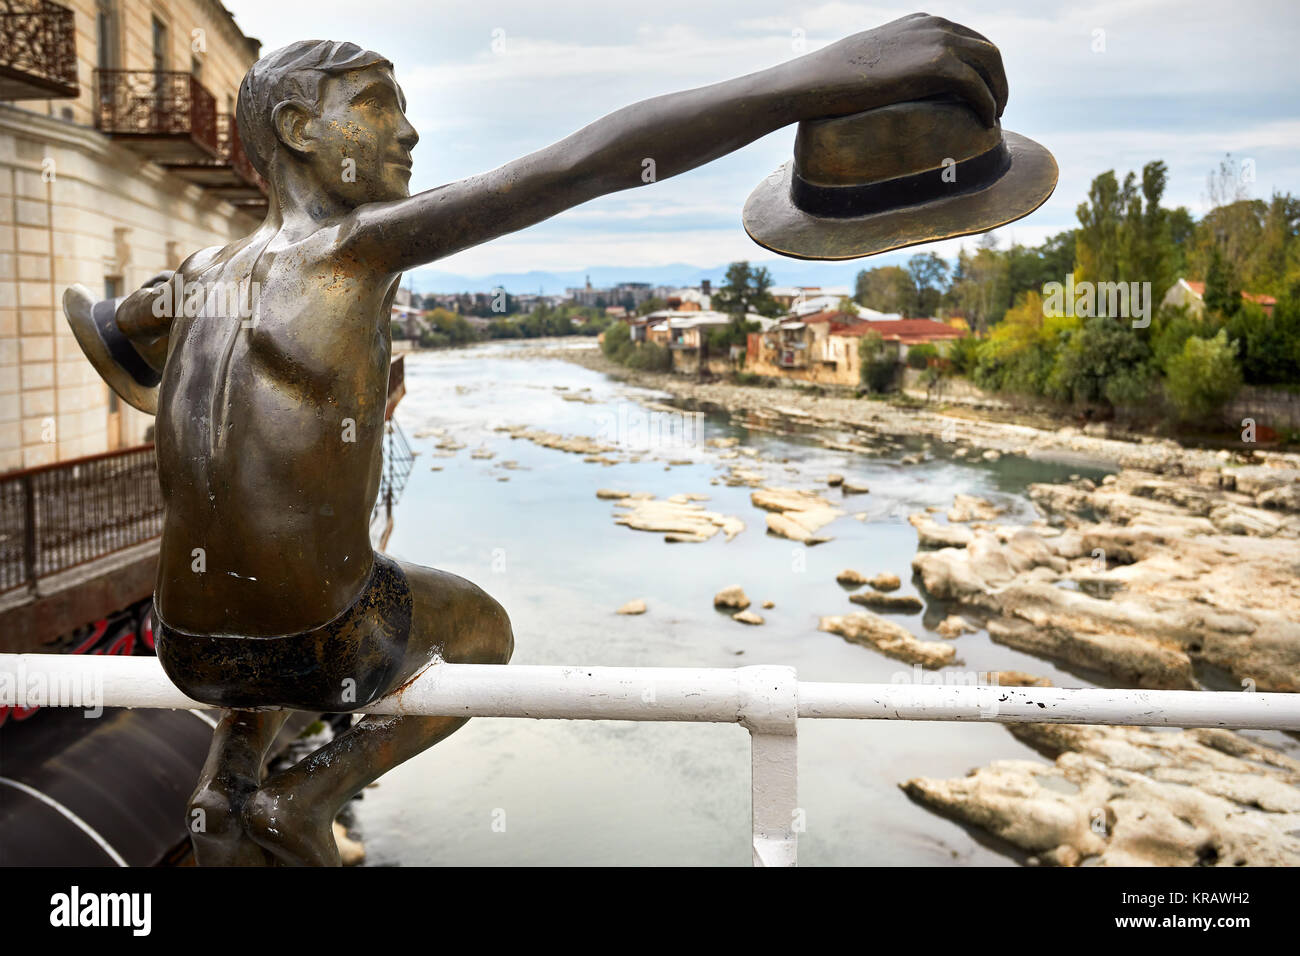 Sculpture of Boy with hat on the bridge in the central Kutaisi, Georgia - Stock Image